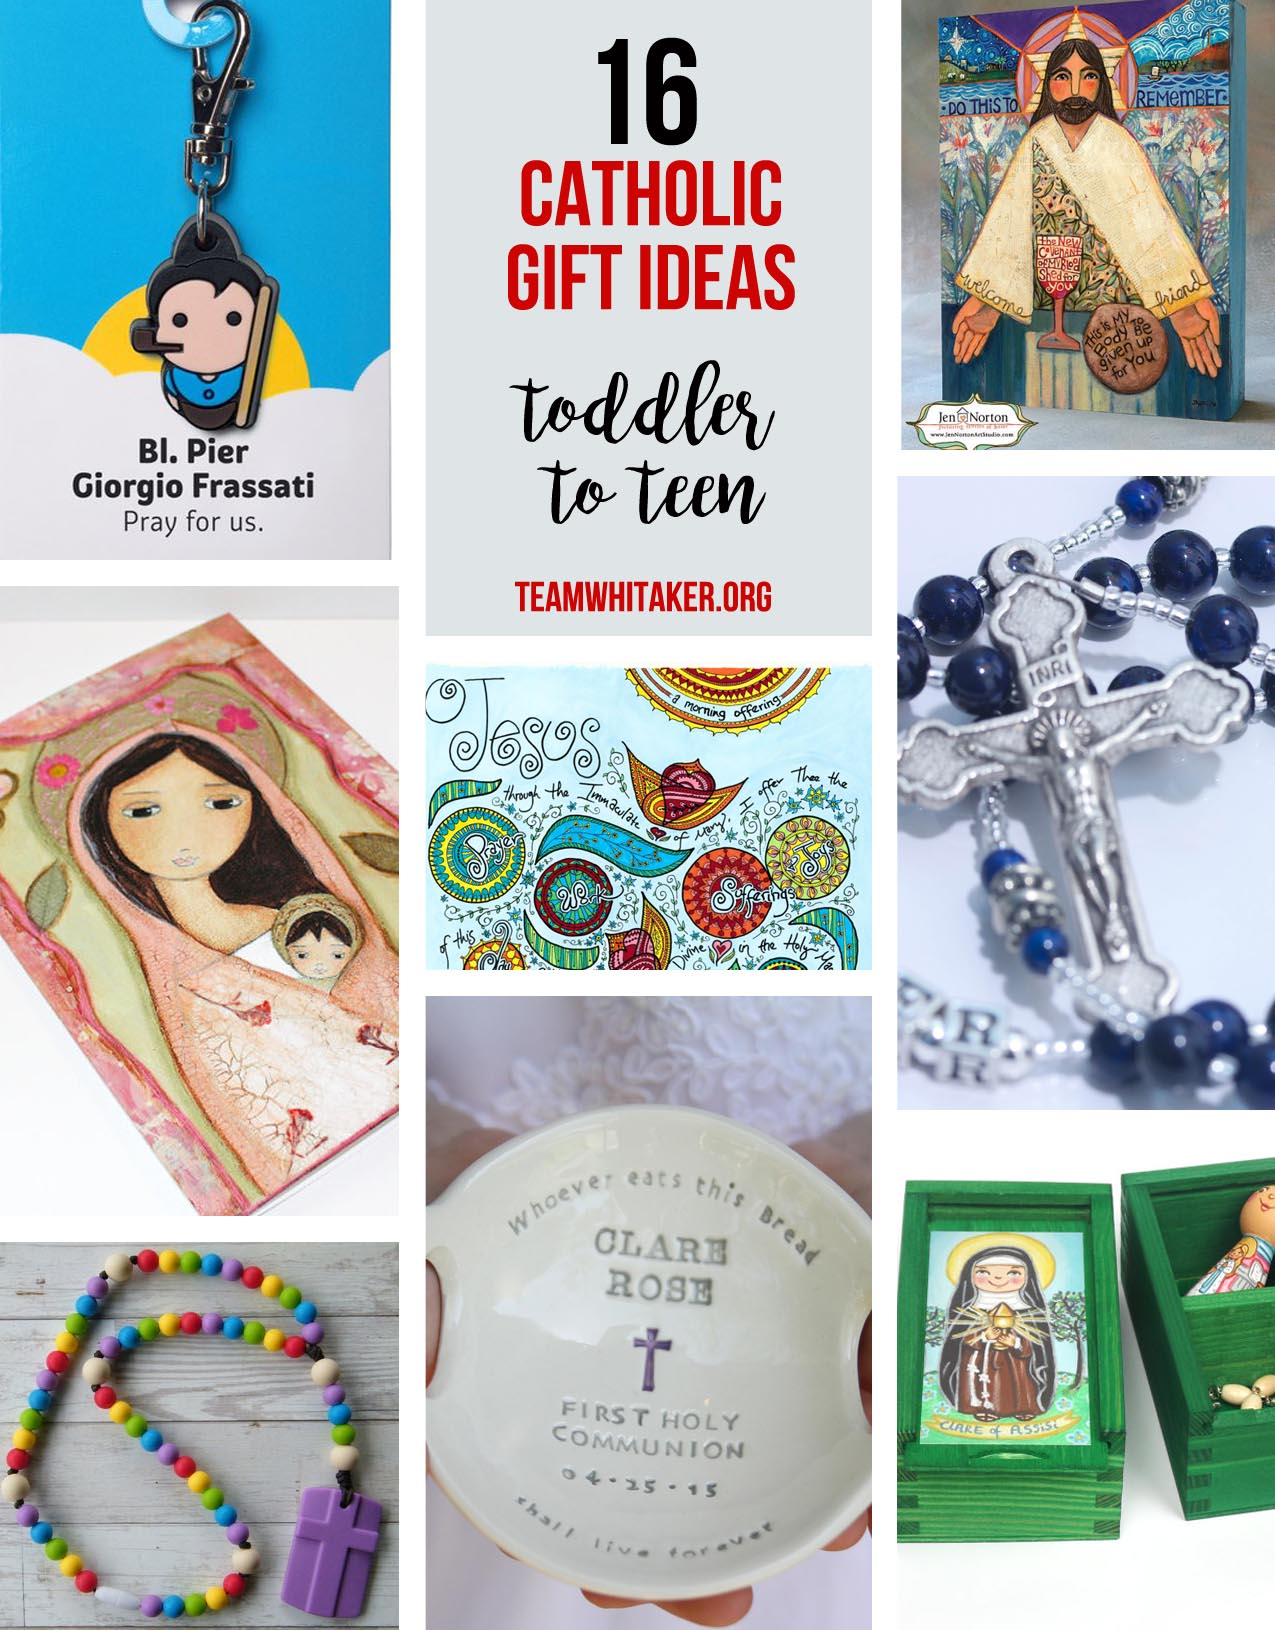 Searching for the perfect Christmas gift for your child this season? Whether you have a toddler, a teenager or a child in between, this Catholic gift guide has something for everyone on your shopping list. Bring on the joy!